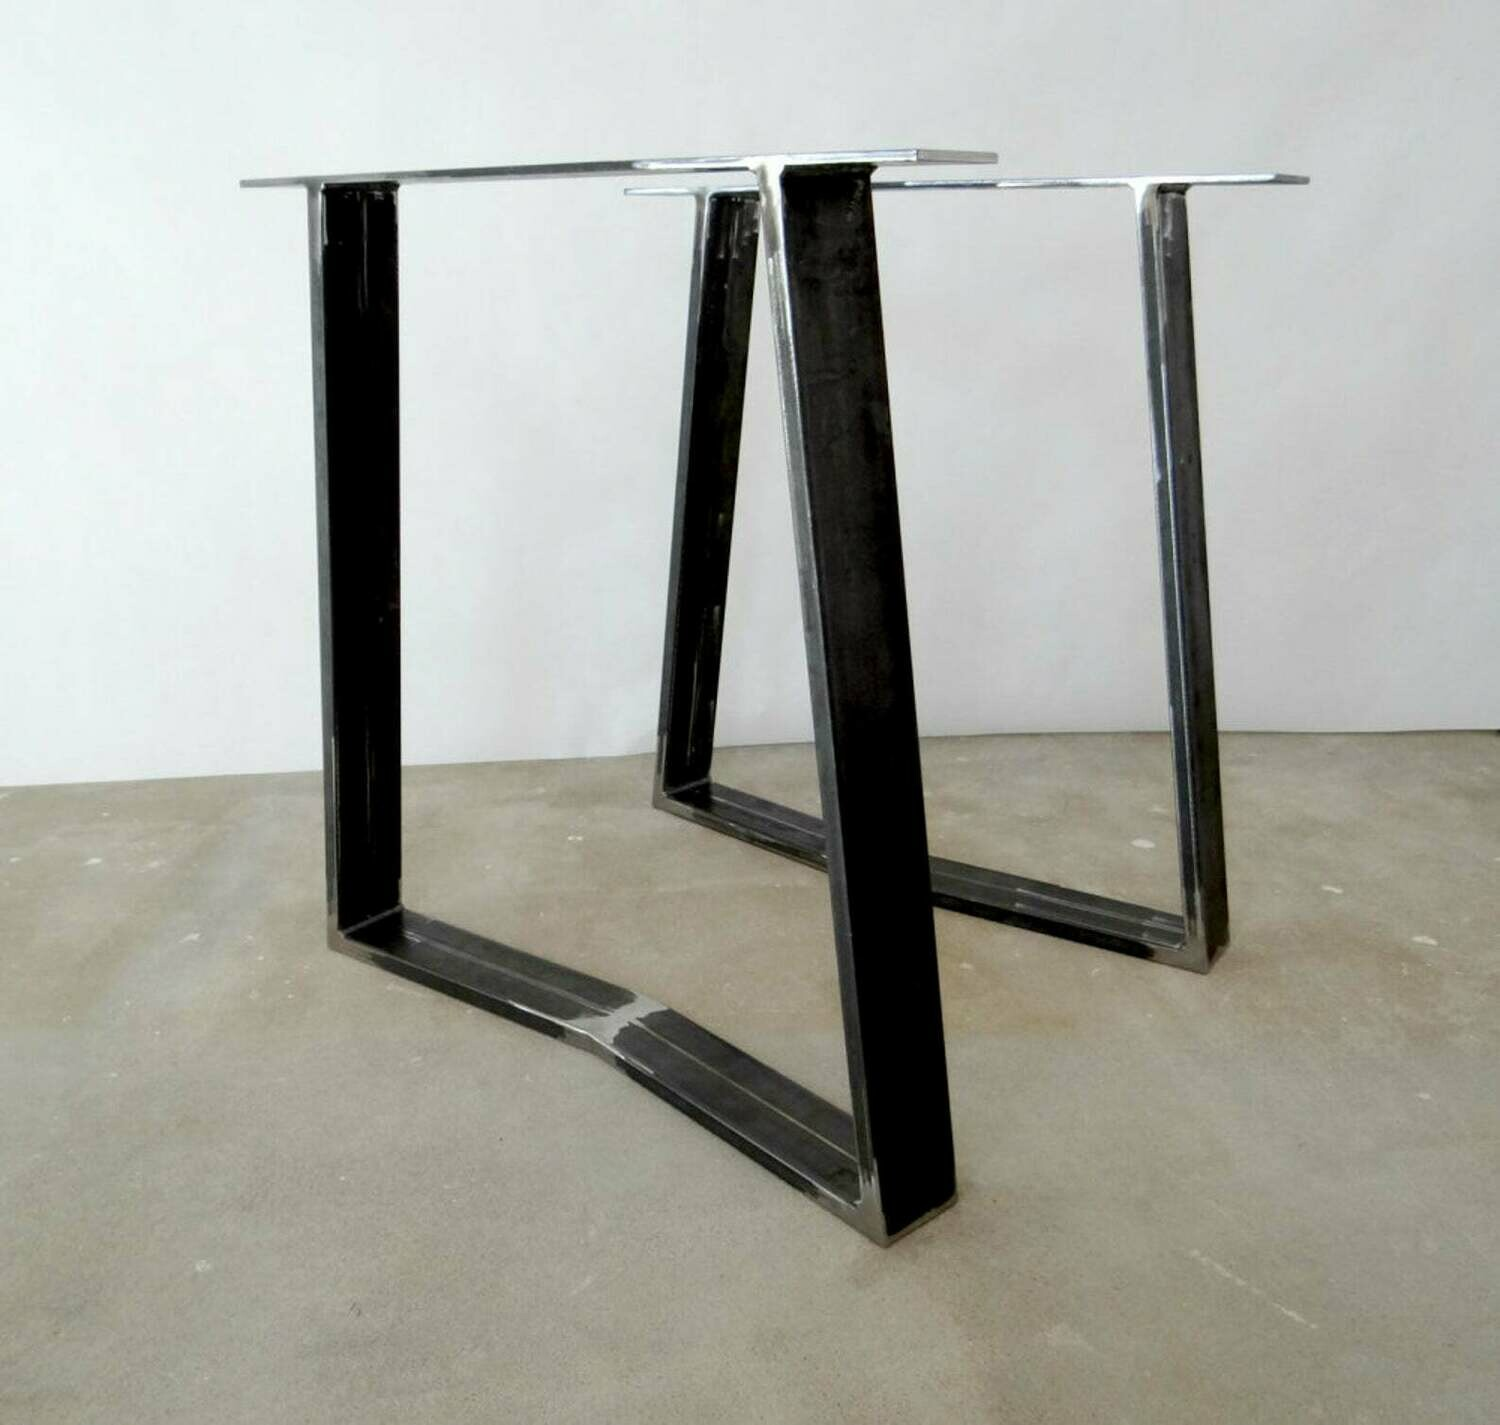 Metal Dining Table Legs Victor (set of 2). Strong Steel Table Legs. Industrial Legs for Table. Iron Table Legs. [D014]